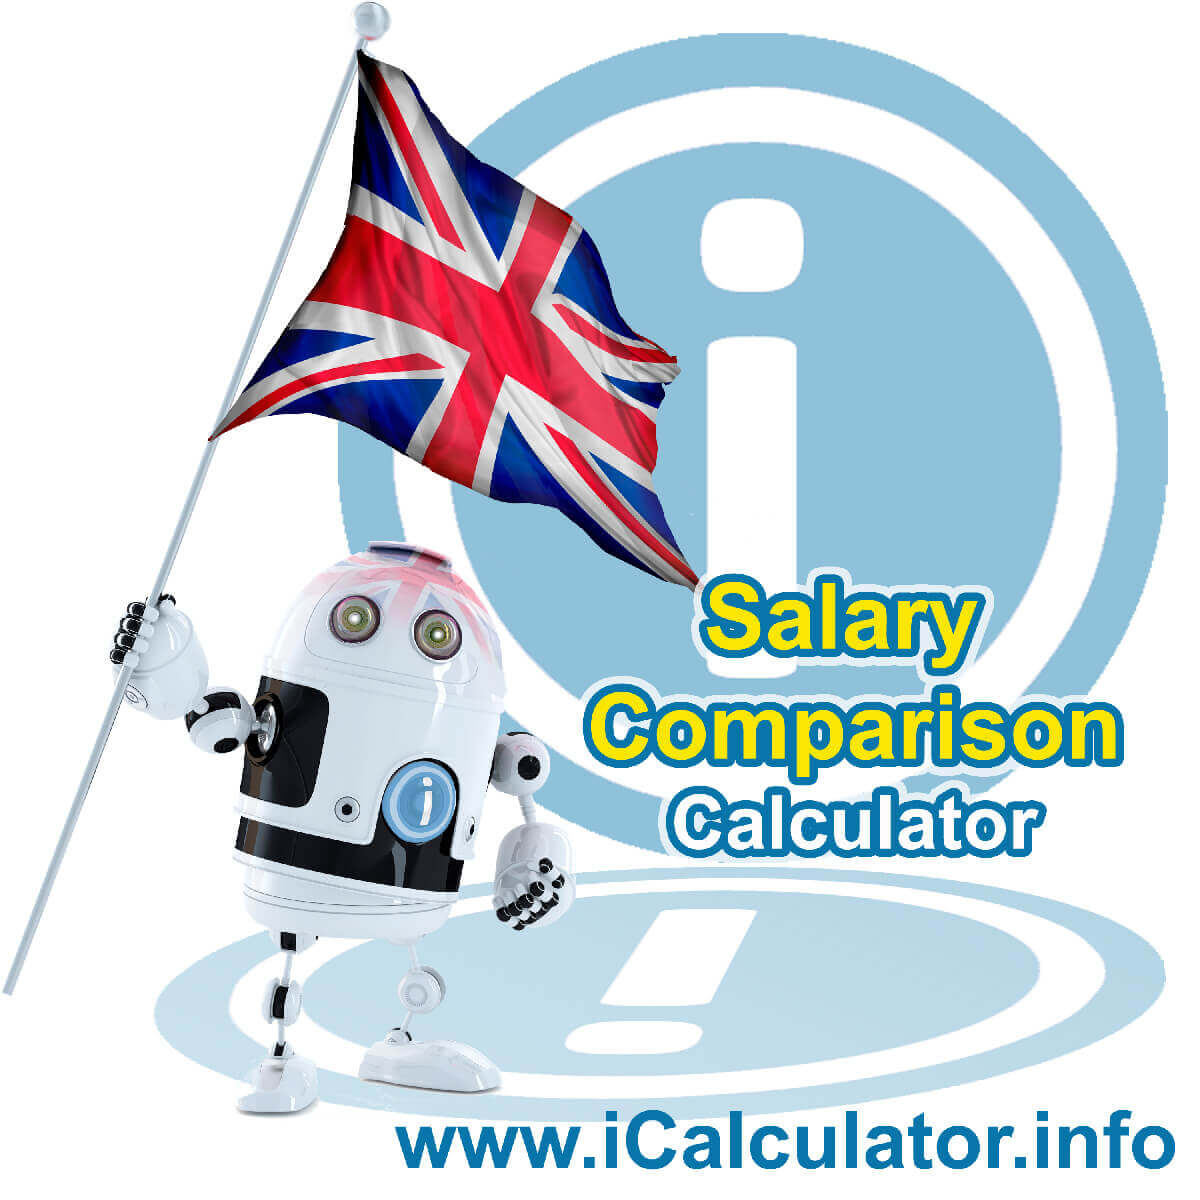 United Kingdom Salary Comparison Calculator. This image shows the United Kingdom flag and information relating to the income tax formula for the United Kingdom Salary Comparison Calculator